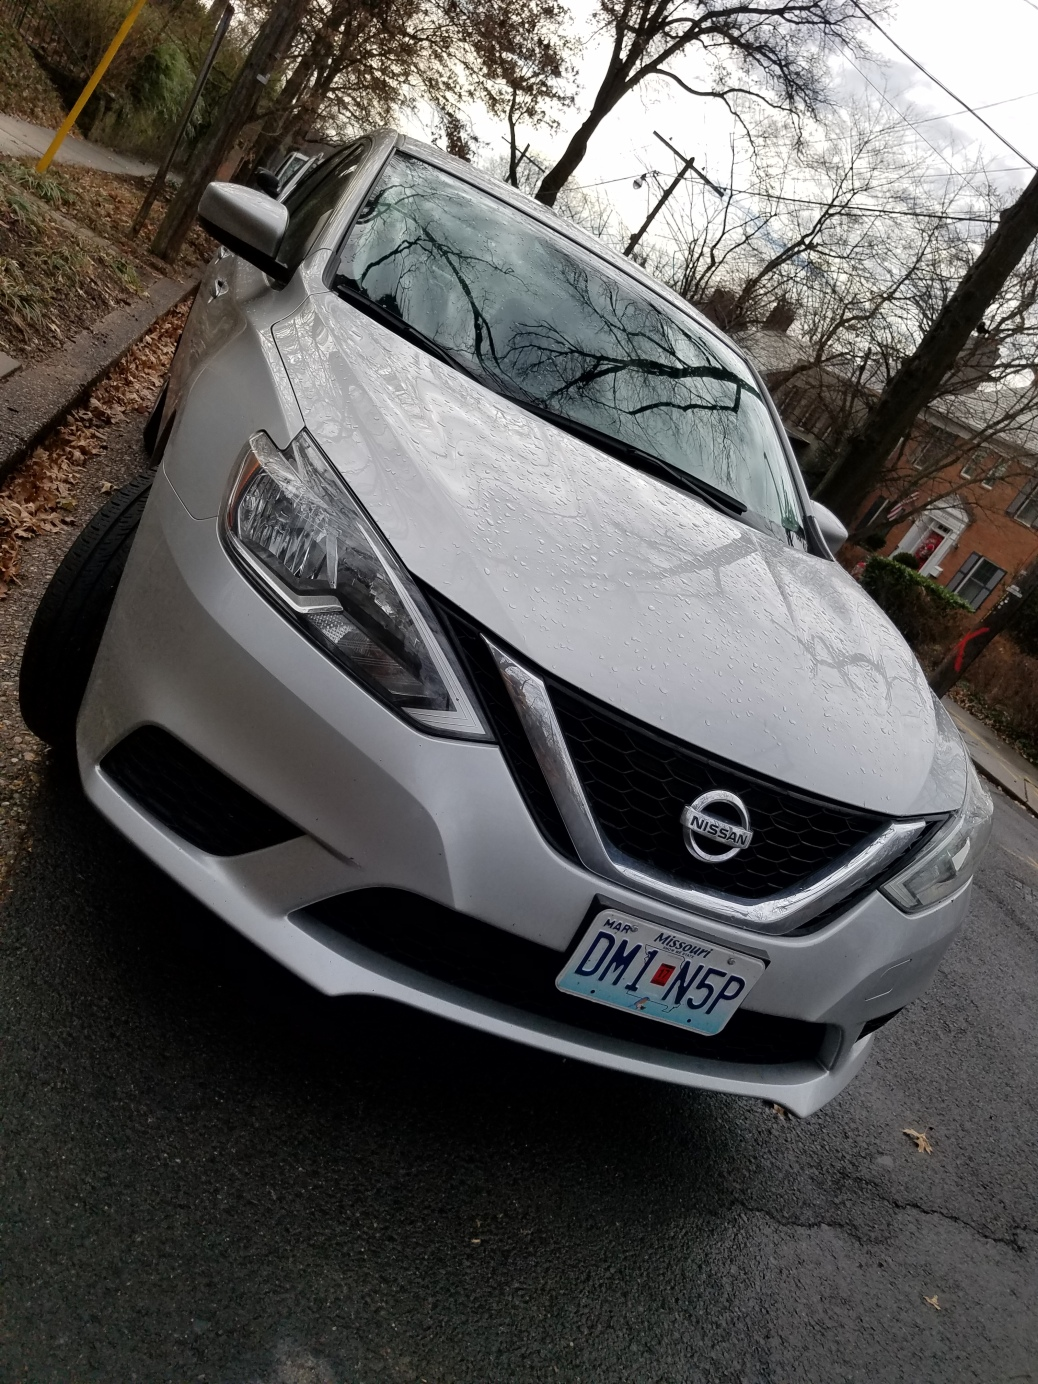 The Nissan Sentra SV a humble four-door sedan that is both dependable and economical.